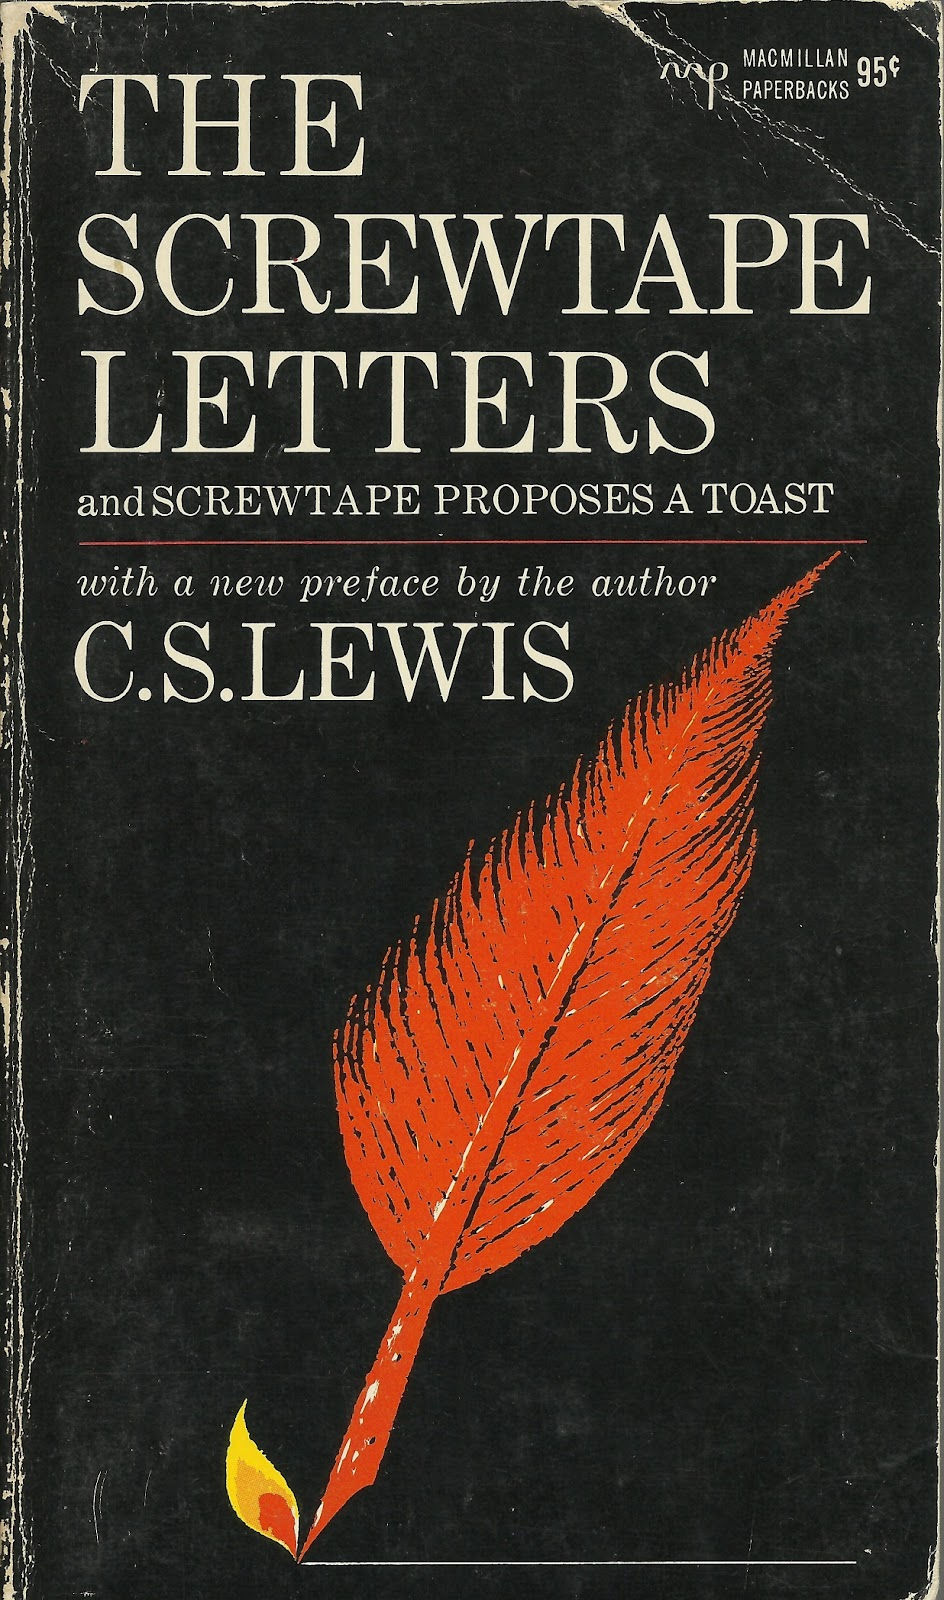 c.s. lewis essays on pride Abstractthis article provides a theological analysis of modern professional sport, in particular the modern olympic games, in light of some of c s lewis's writings on pride.